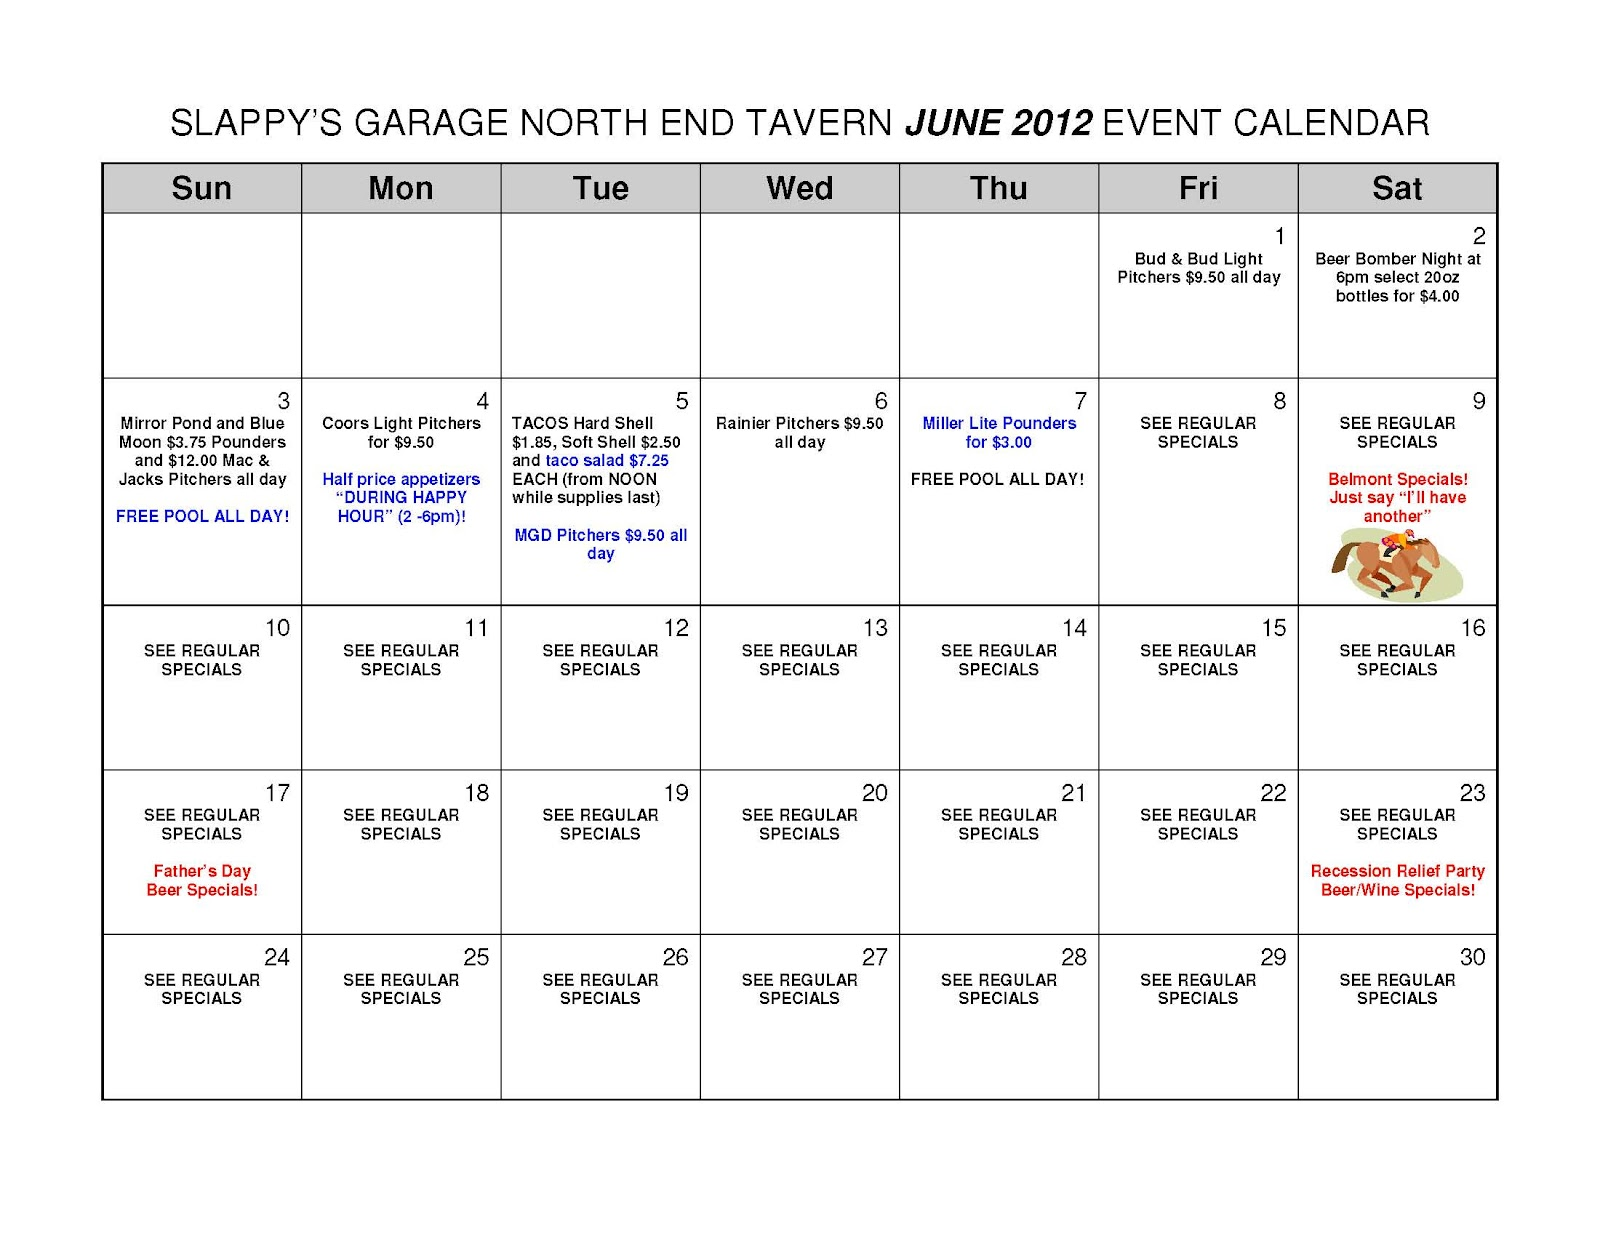 June Calendar Events : Slappy s garage north end tavern june events